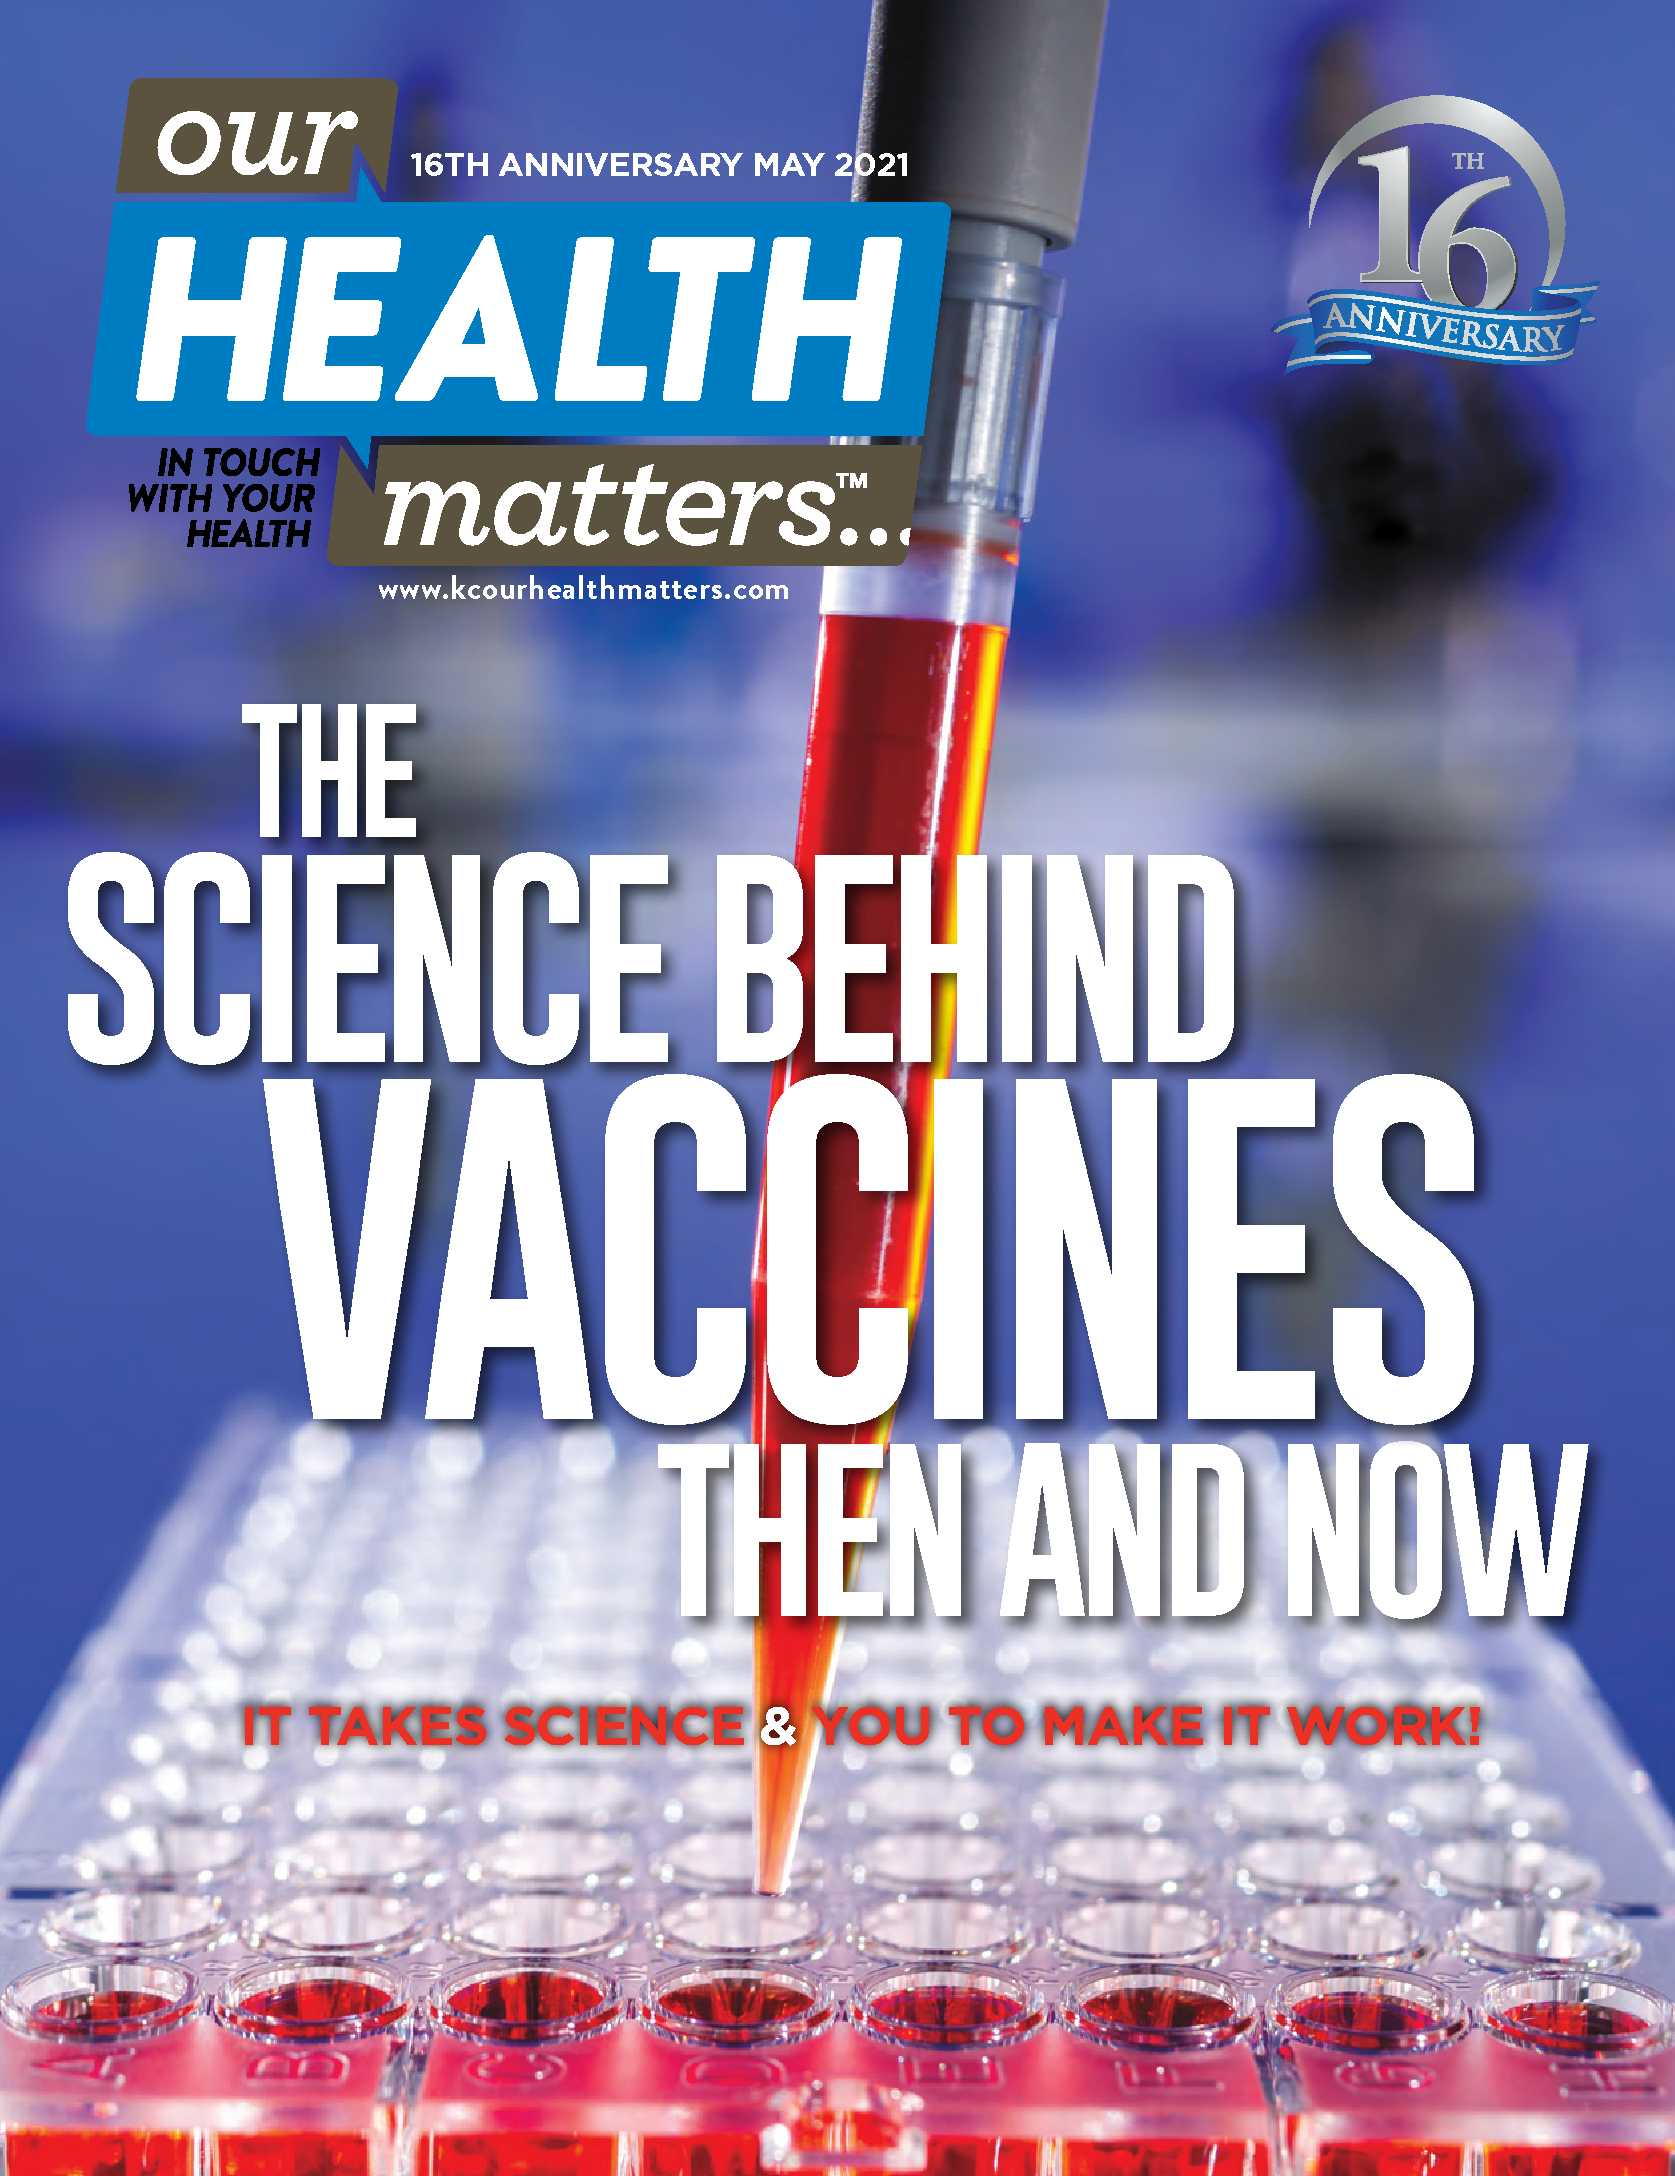 The Science Behind Vaccines